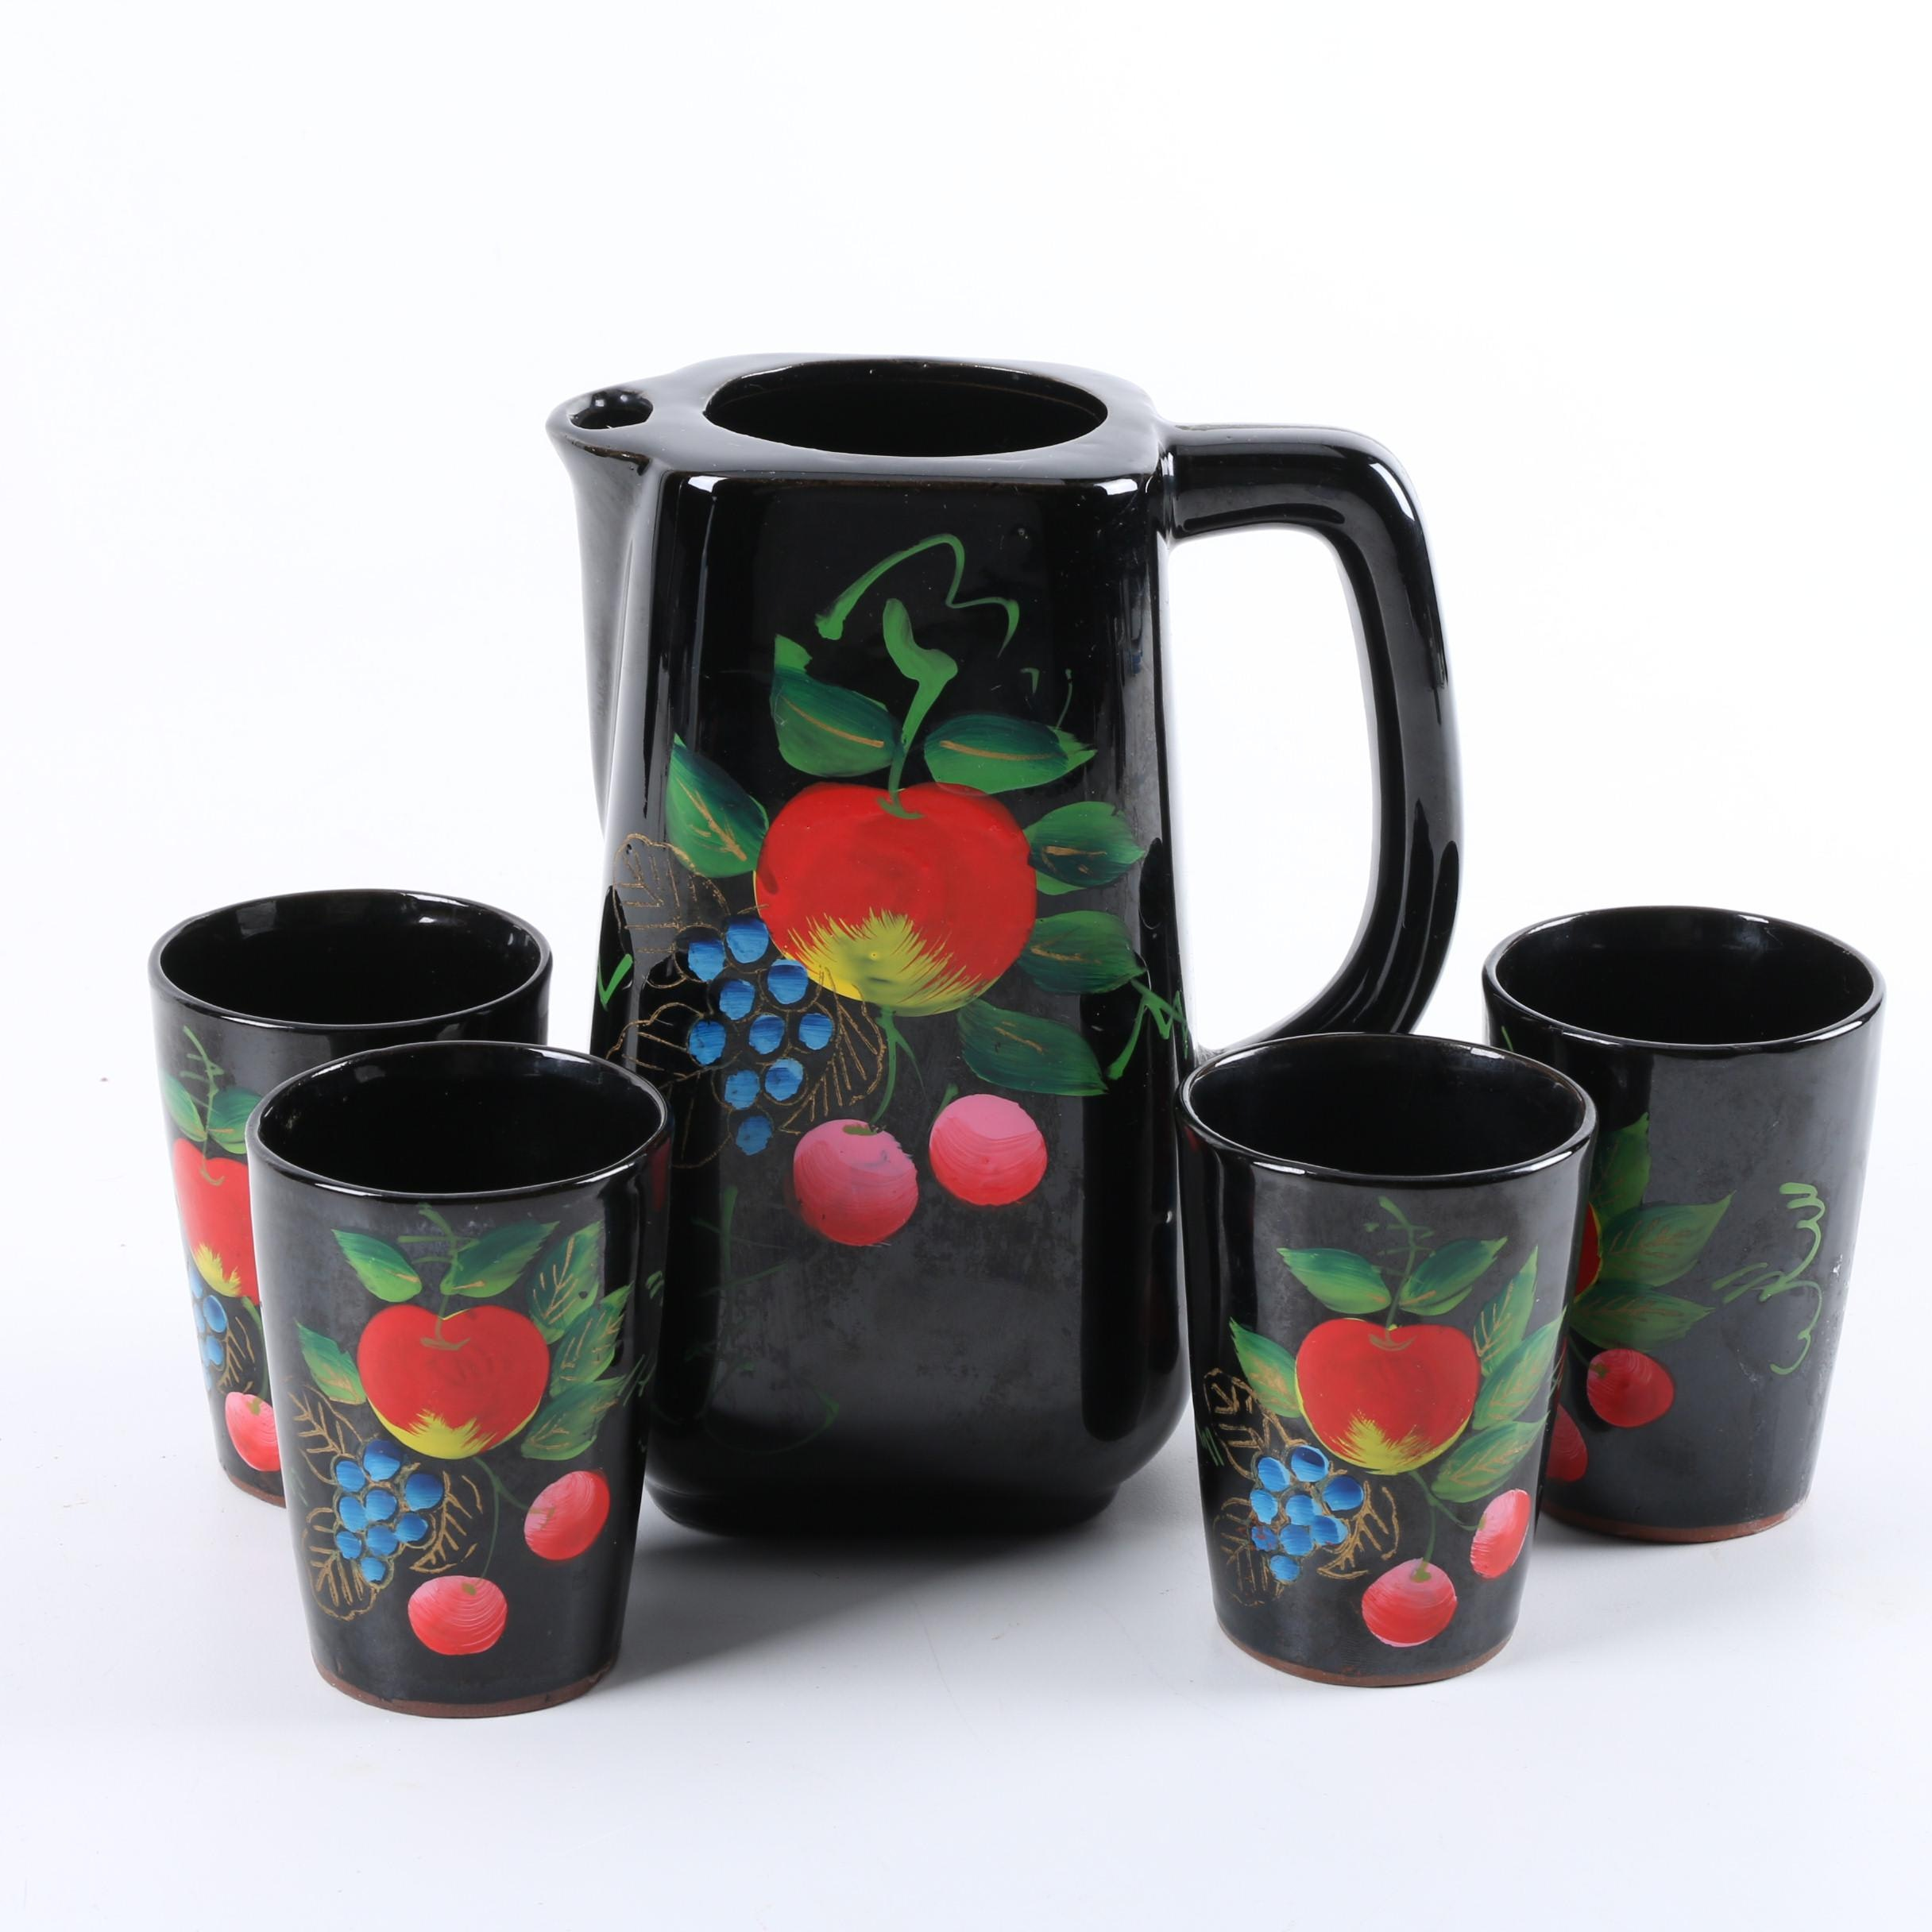 Japanese Belco Hand-Painted Ceramic Pitcher with Glasses